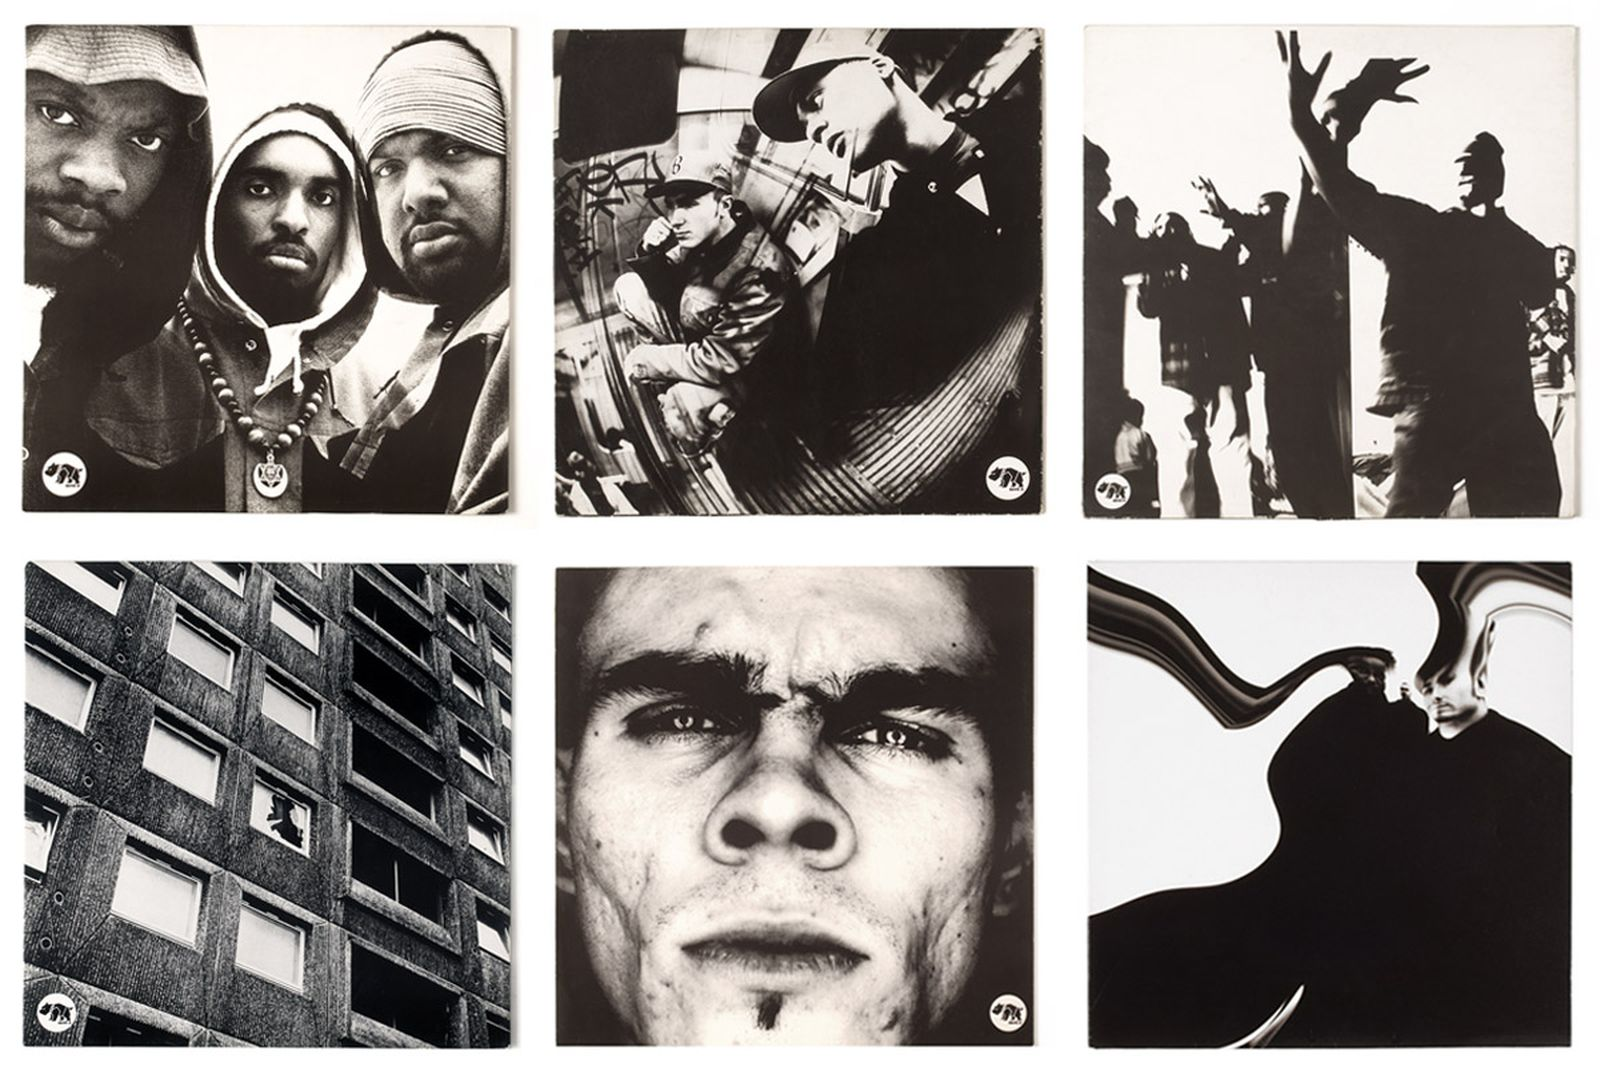 TOP ROW: BITE 05. SCIENTISTS OF SOUND - SCIENTISTS OF SOUND E.P. 1992 / BITE 06. BROTHERHOOD - WAYZ OF THE WIZE. 1992 / BITE 09. SCIENTISTS OF SOUND - BAD BOY SWING. 1995 / BOTTOM ROW: BITE 04. 100% PROOF - DIFFERENT NEIGHBOURHOOD. 1992 / BLOODT2. BROTHERHOOD - ALPHABETICAL RESPONSE. 1995